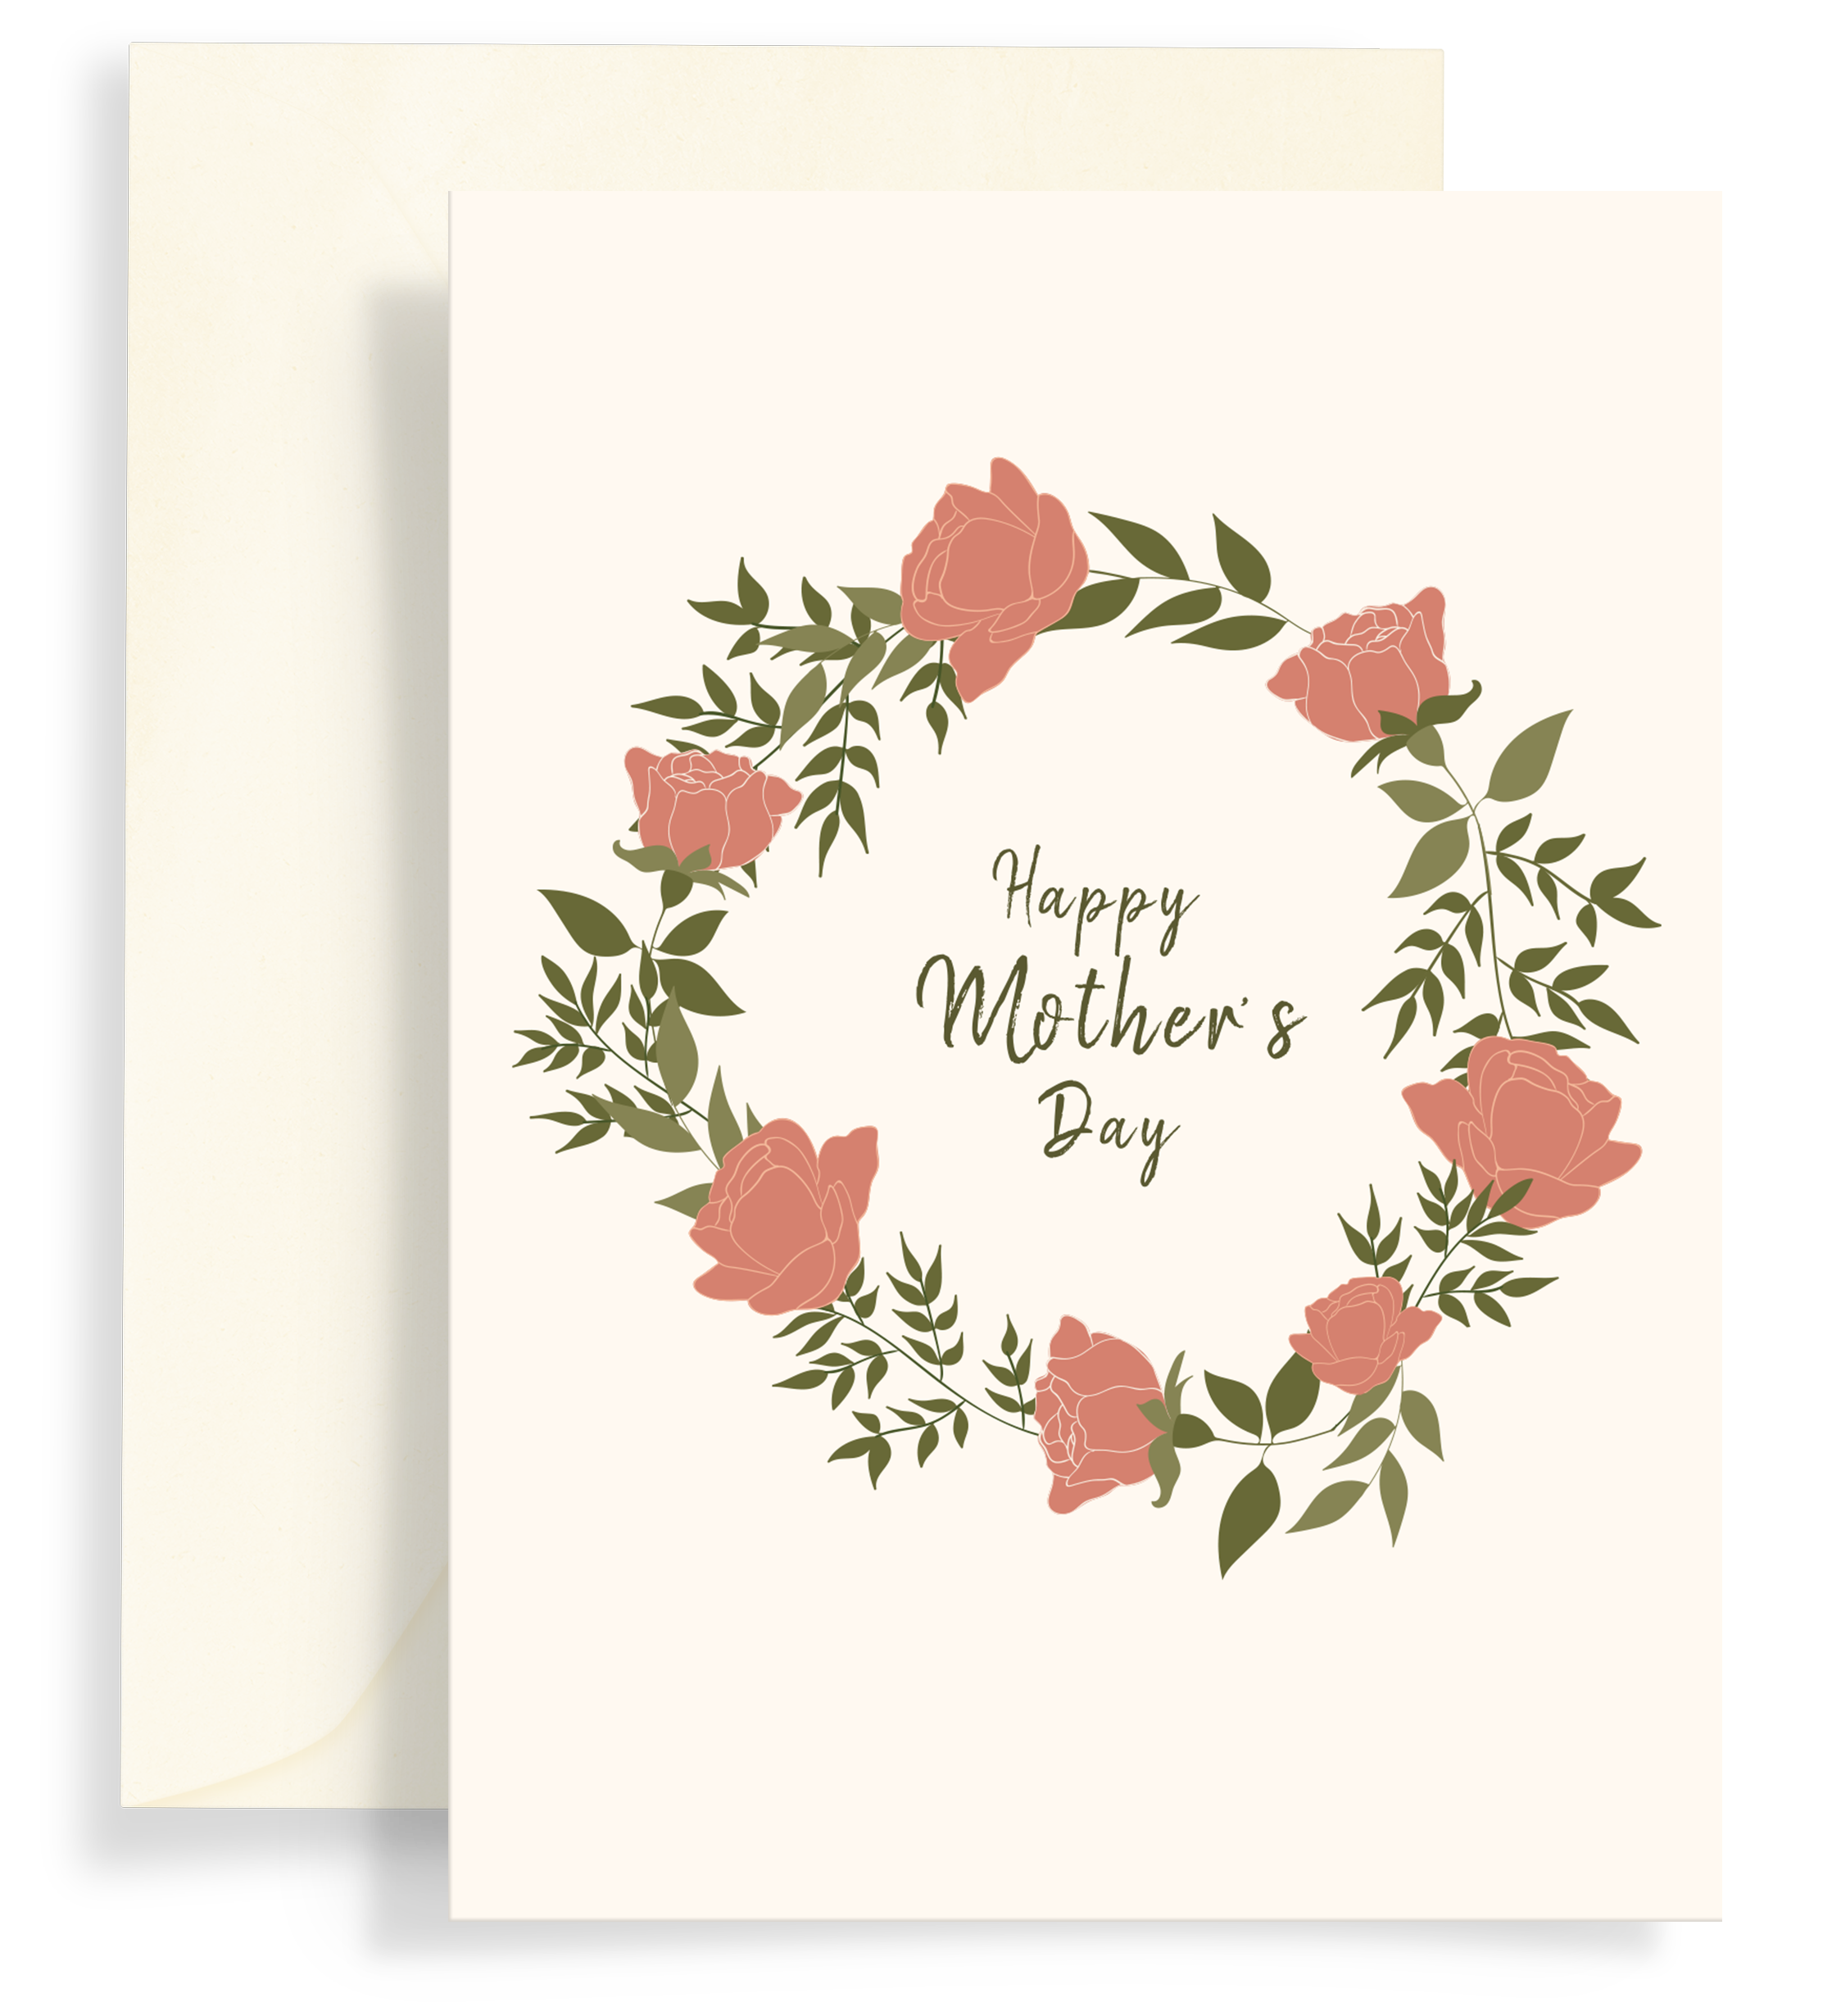 Illustrated greeting card with a beautiful rose wreath on a lovely cream background. Text says 'Happy Mother's Day'